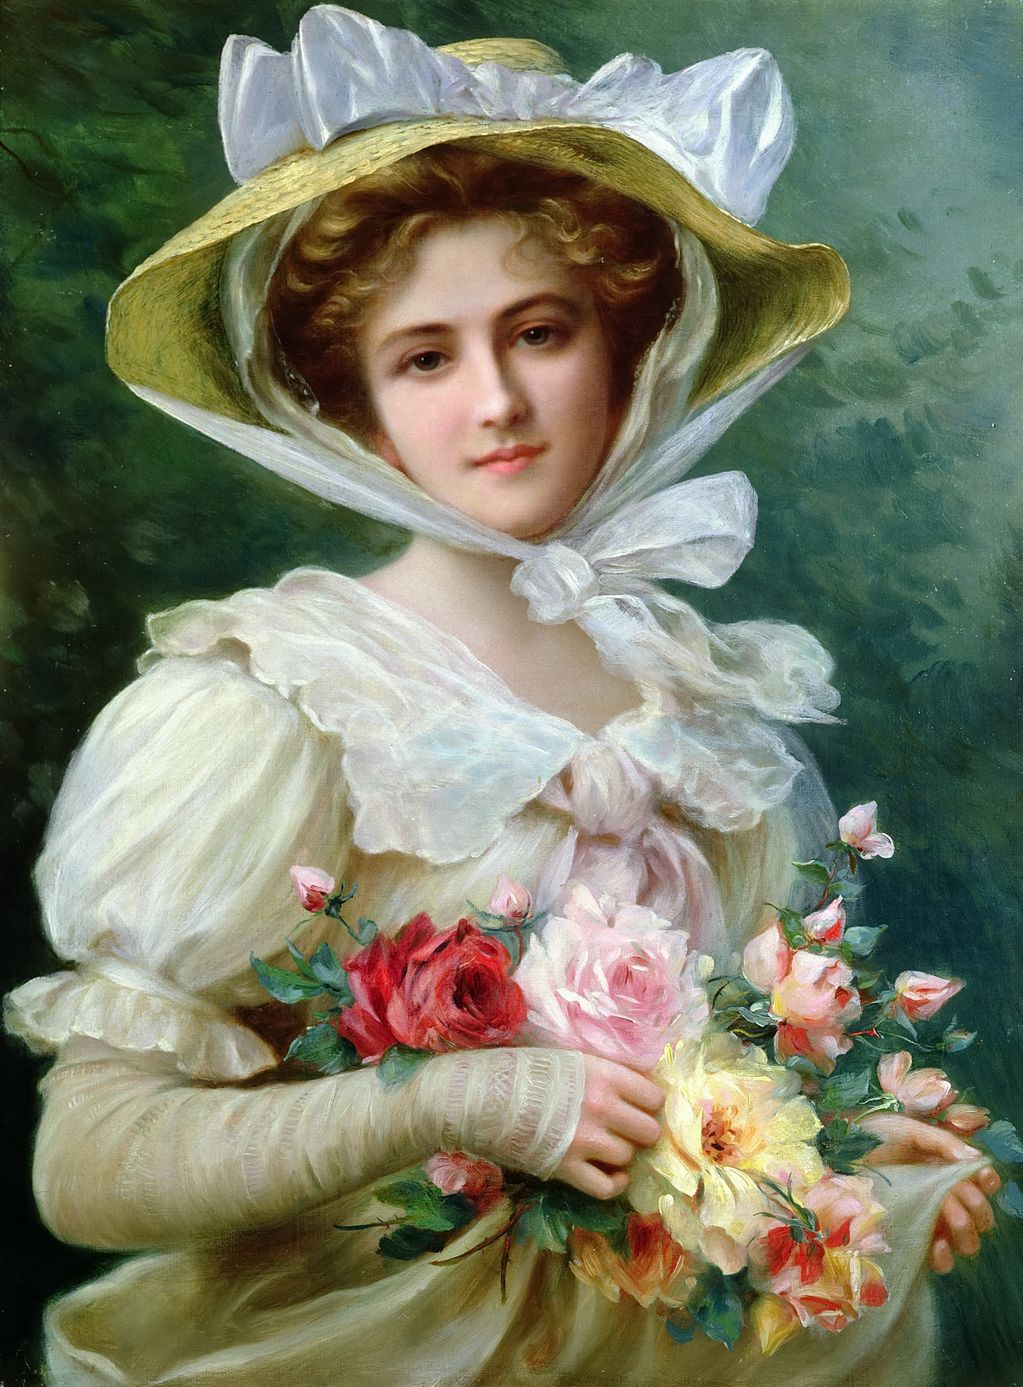 40 Fine Art Paintings by Émile Vernon – 5-Minute HistoryVictorian Woman Portrait